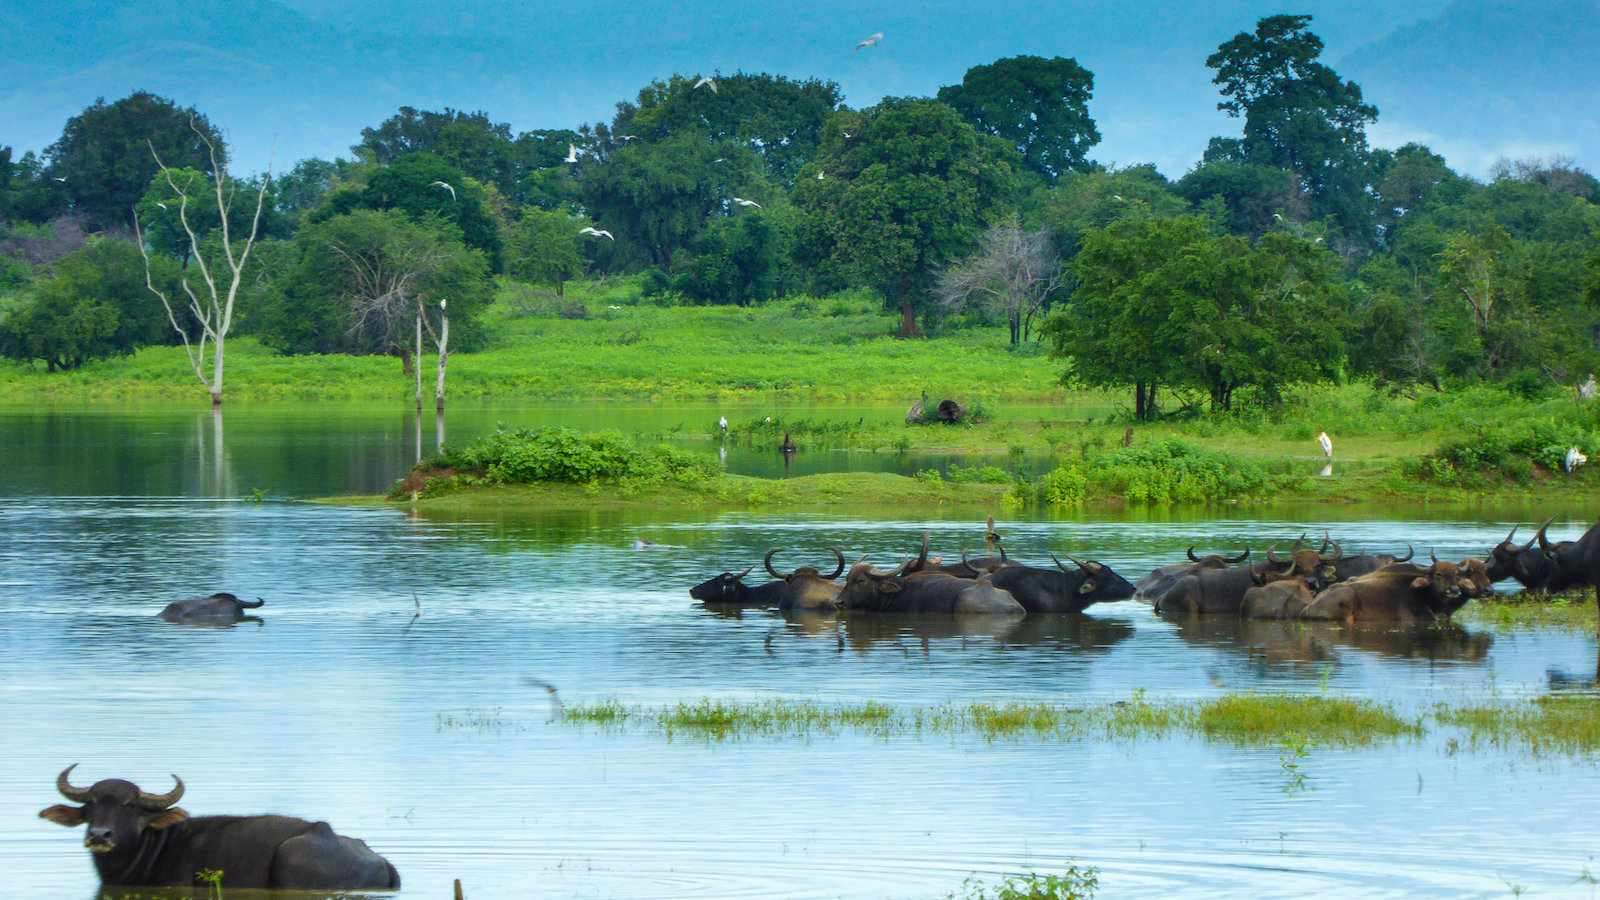 Wild water buffalos are one of the animals you will see plenty of in Udawalawe National Park